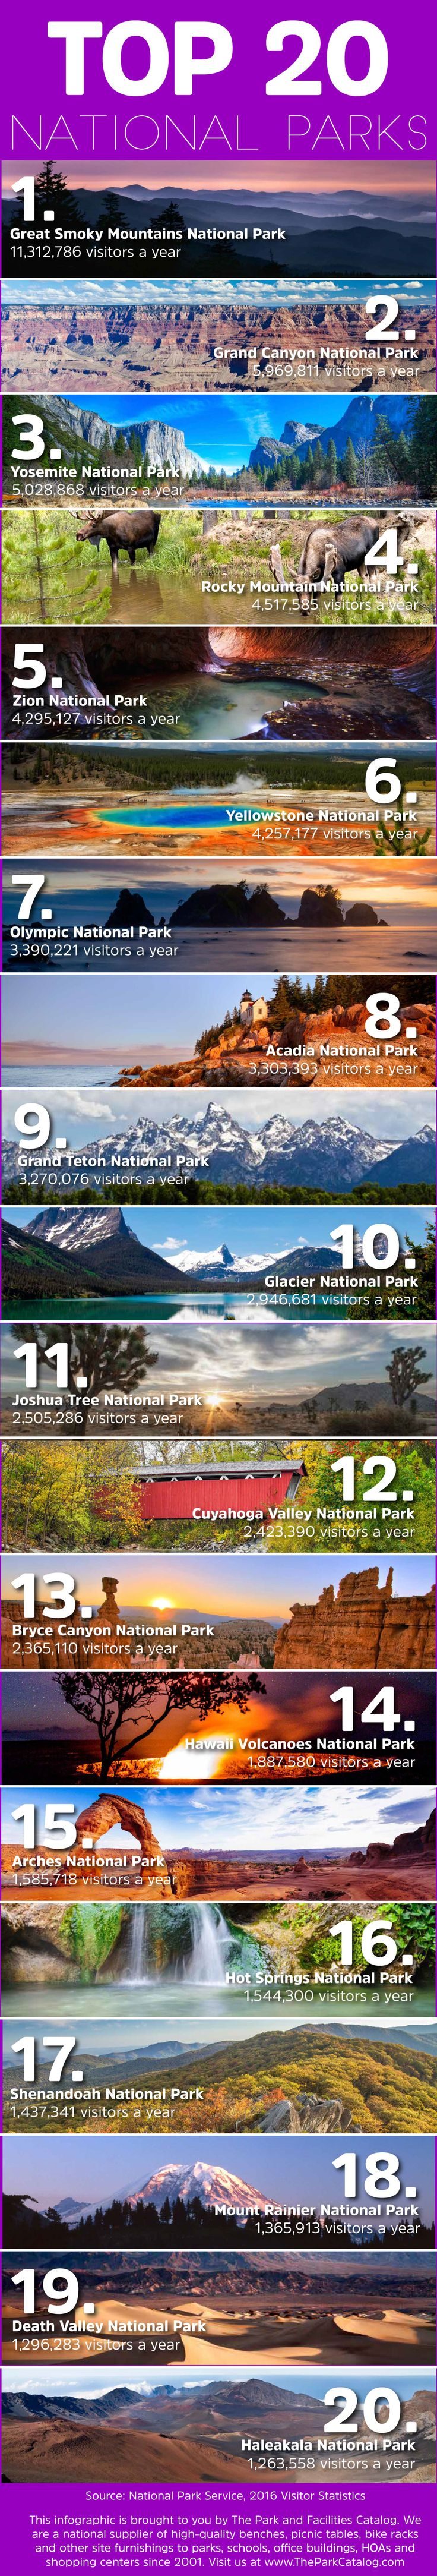 Latest visitor totals for Top 20 National Parks in the US - @IleneBeadles @petit_elefant @stuffedsuitcase @ytravelblog @thebontraveler @kgibson1198 @woongzas @tftravels @lmonitz @iMountainBiking @cookingwithriri @59nationalparks @travel